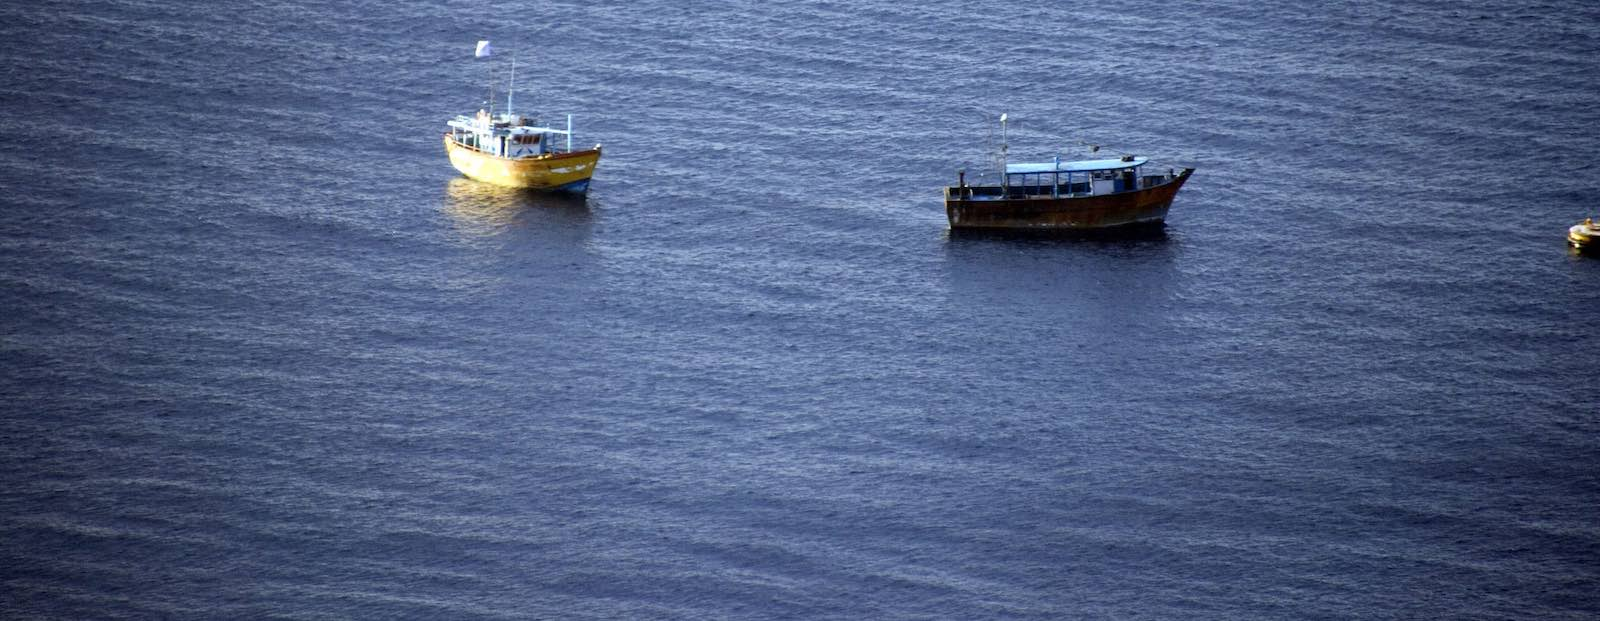 Asylum seeker boats moored off Christmas Island in 2012 (Photo: frogtrail images/Flickr)